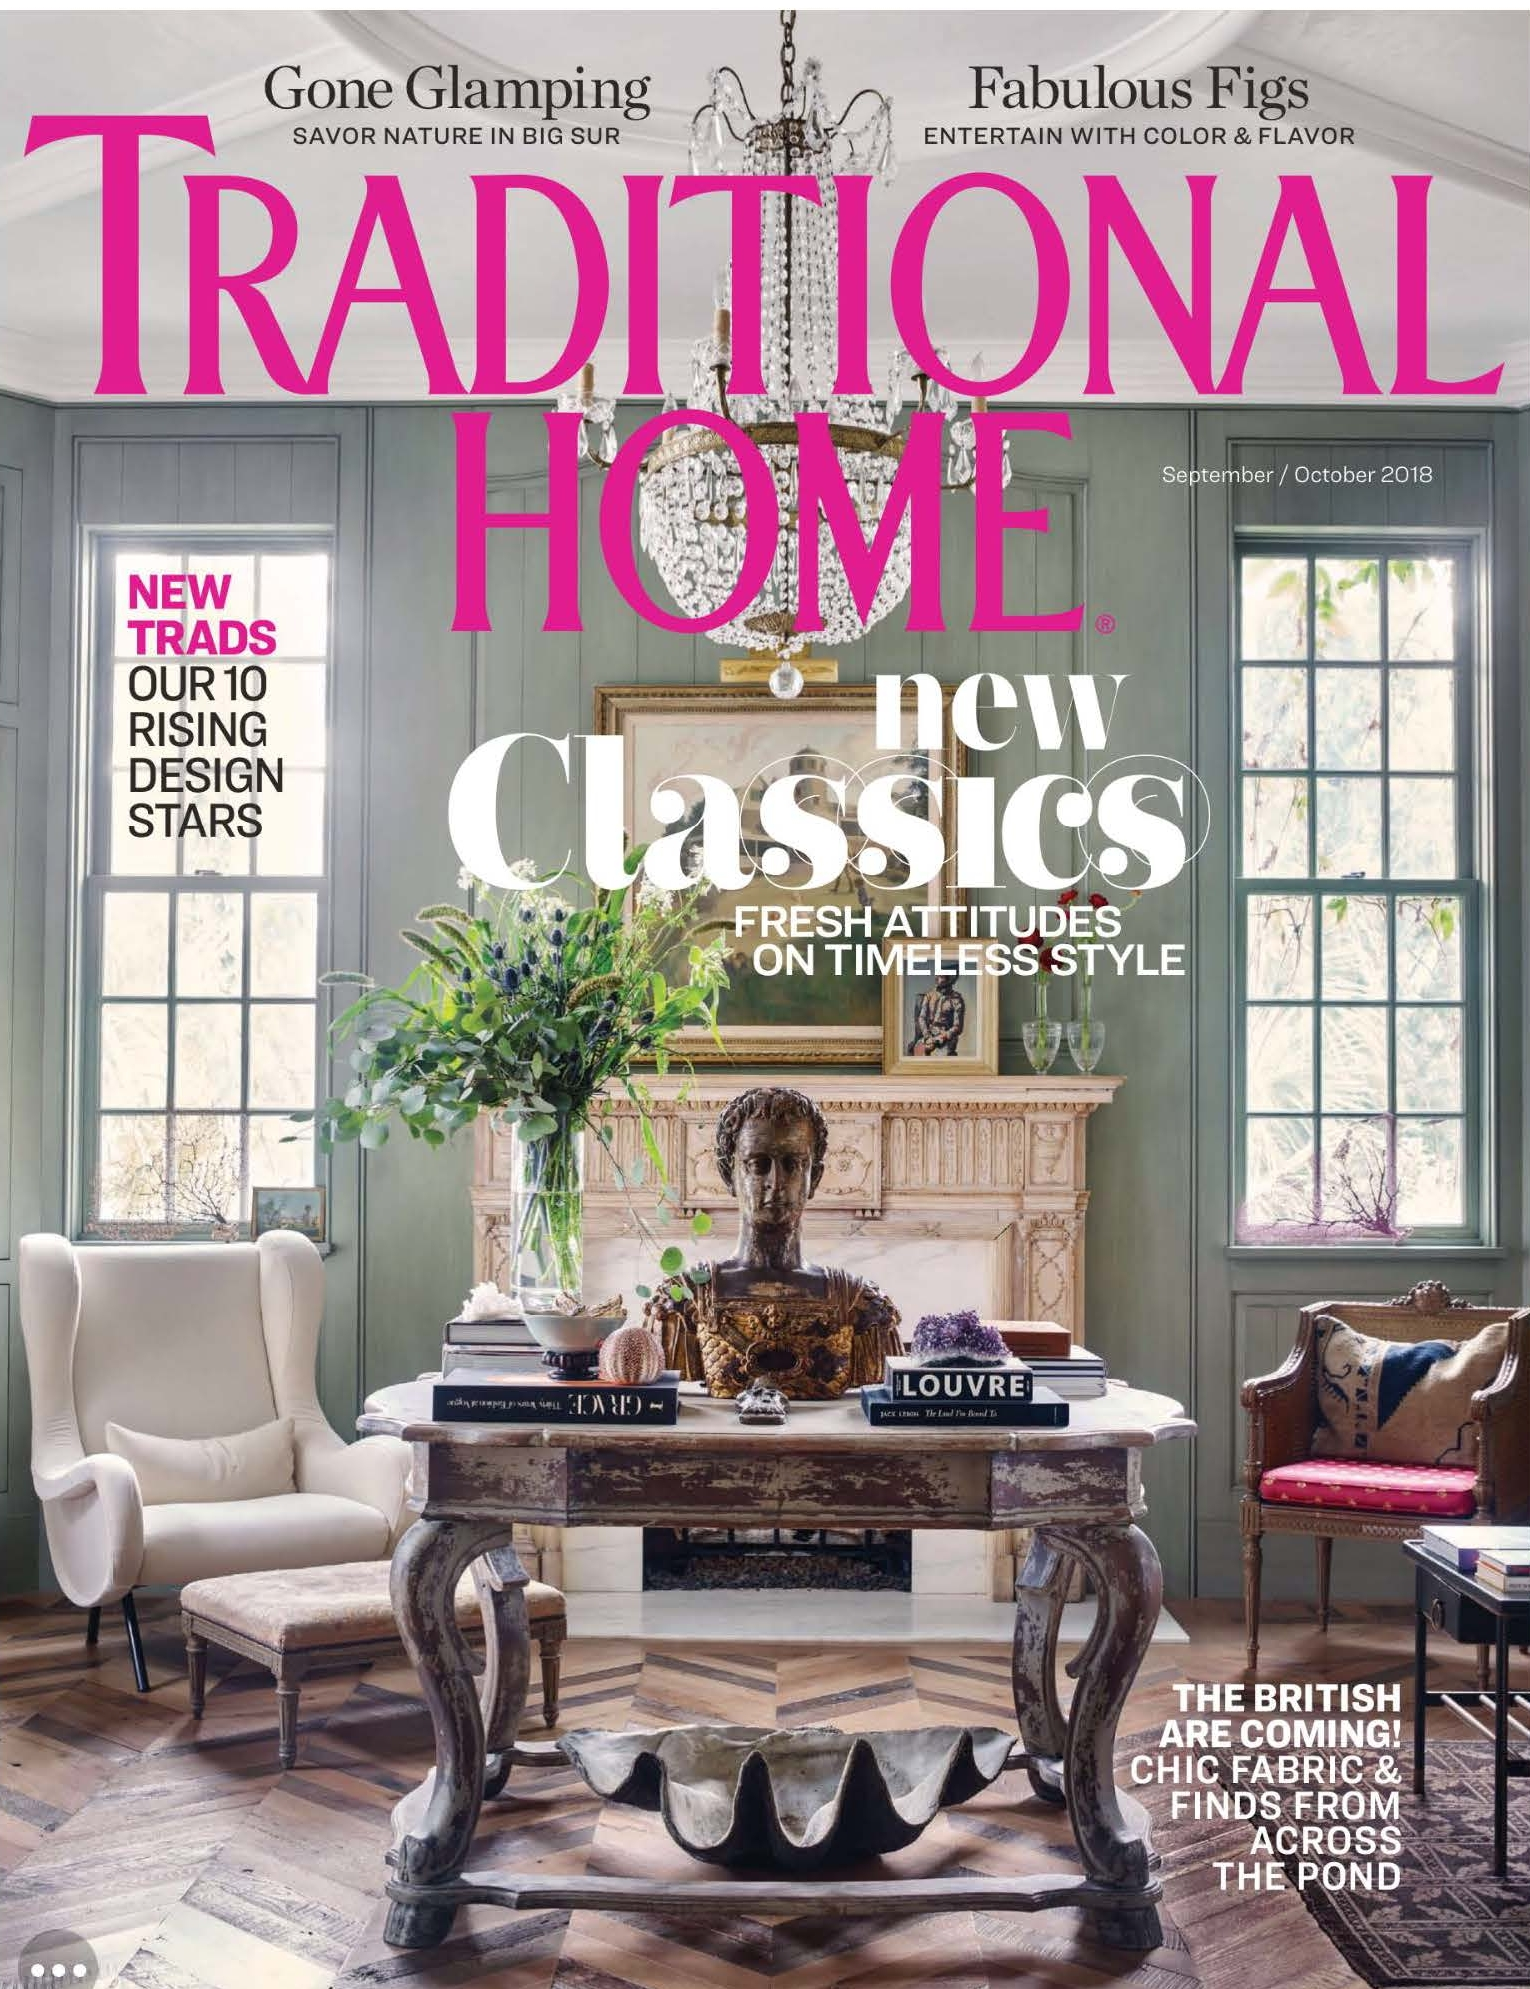 Traditional Home Sept-Oct 2018 1.jpg